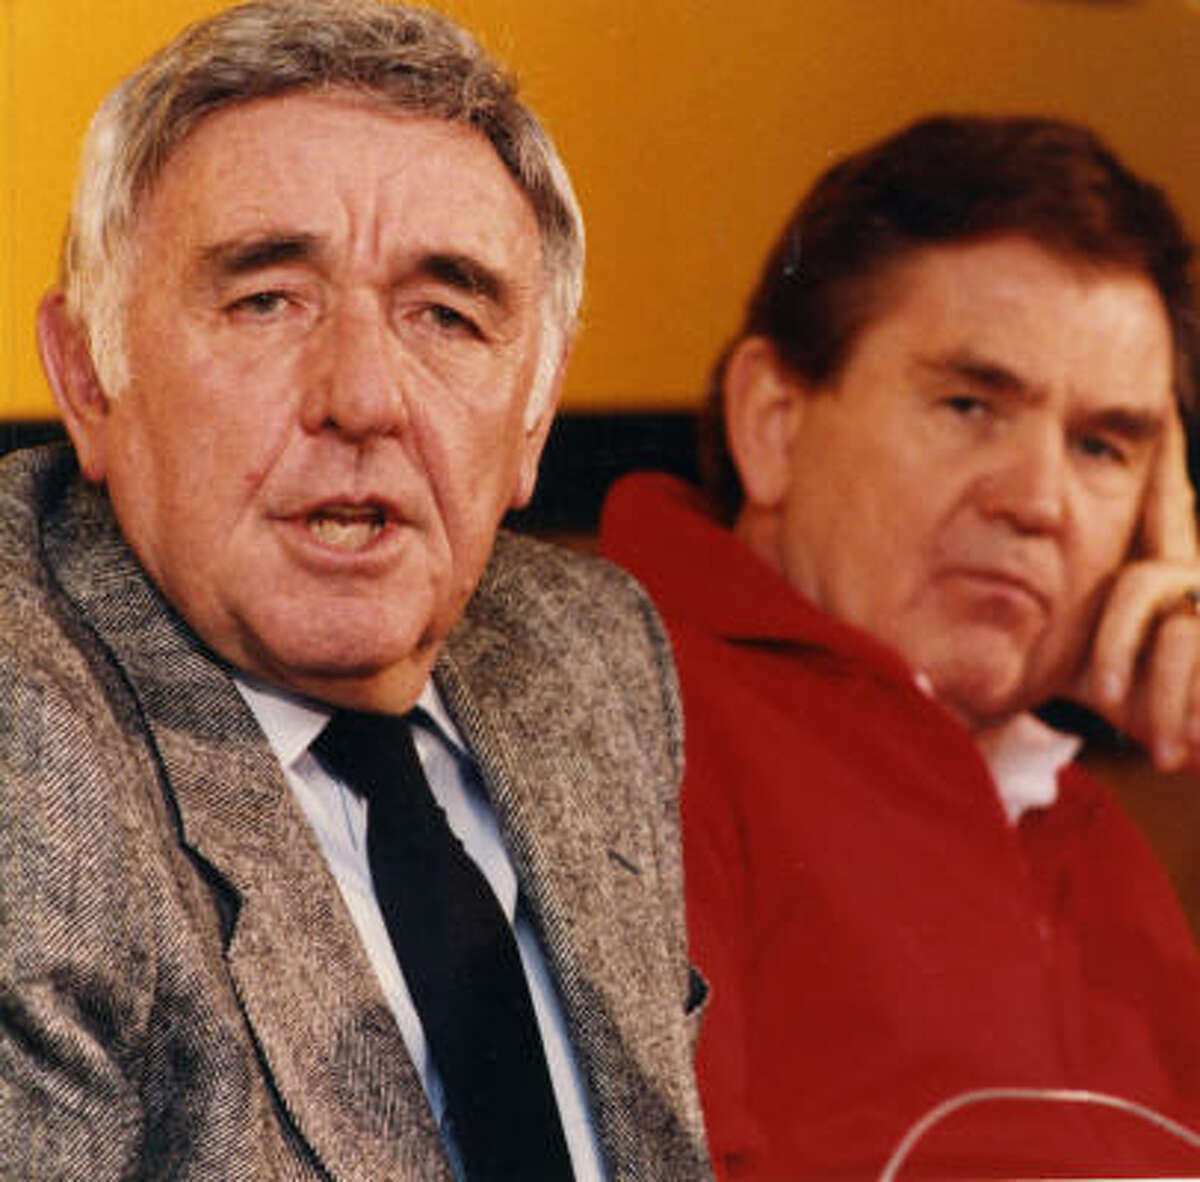 Former Rockets president and GM Ray Patterson, left, and former coach Bill Fitch address the media in this 1987 photo.